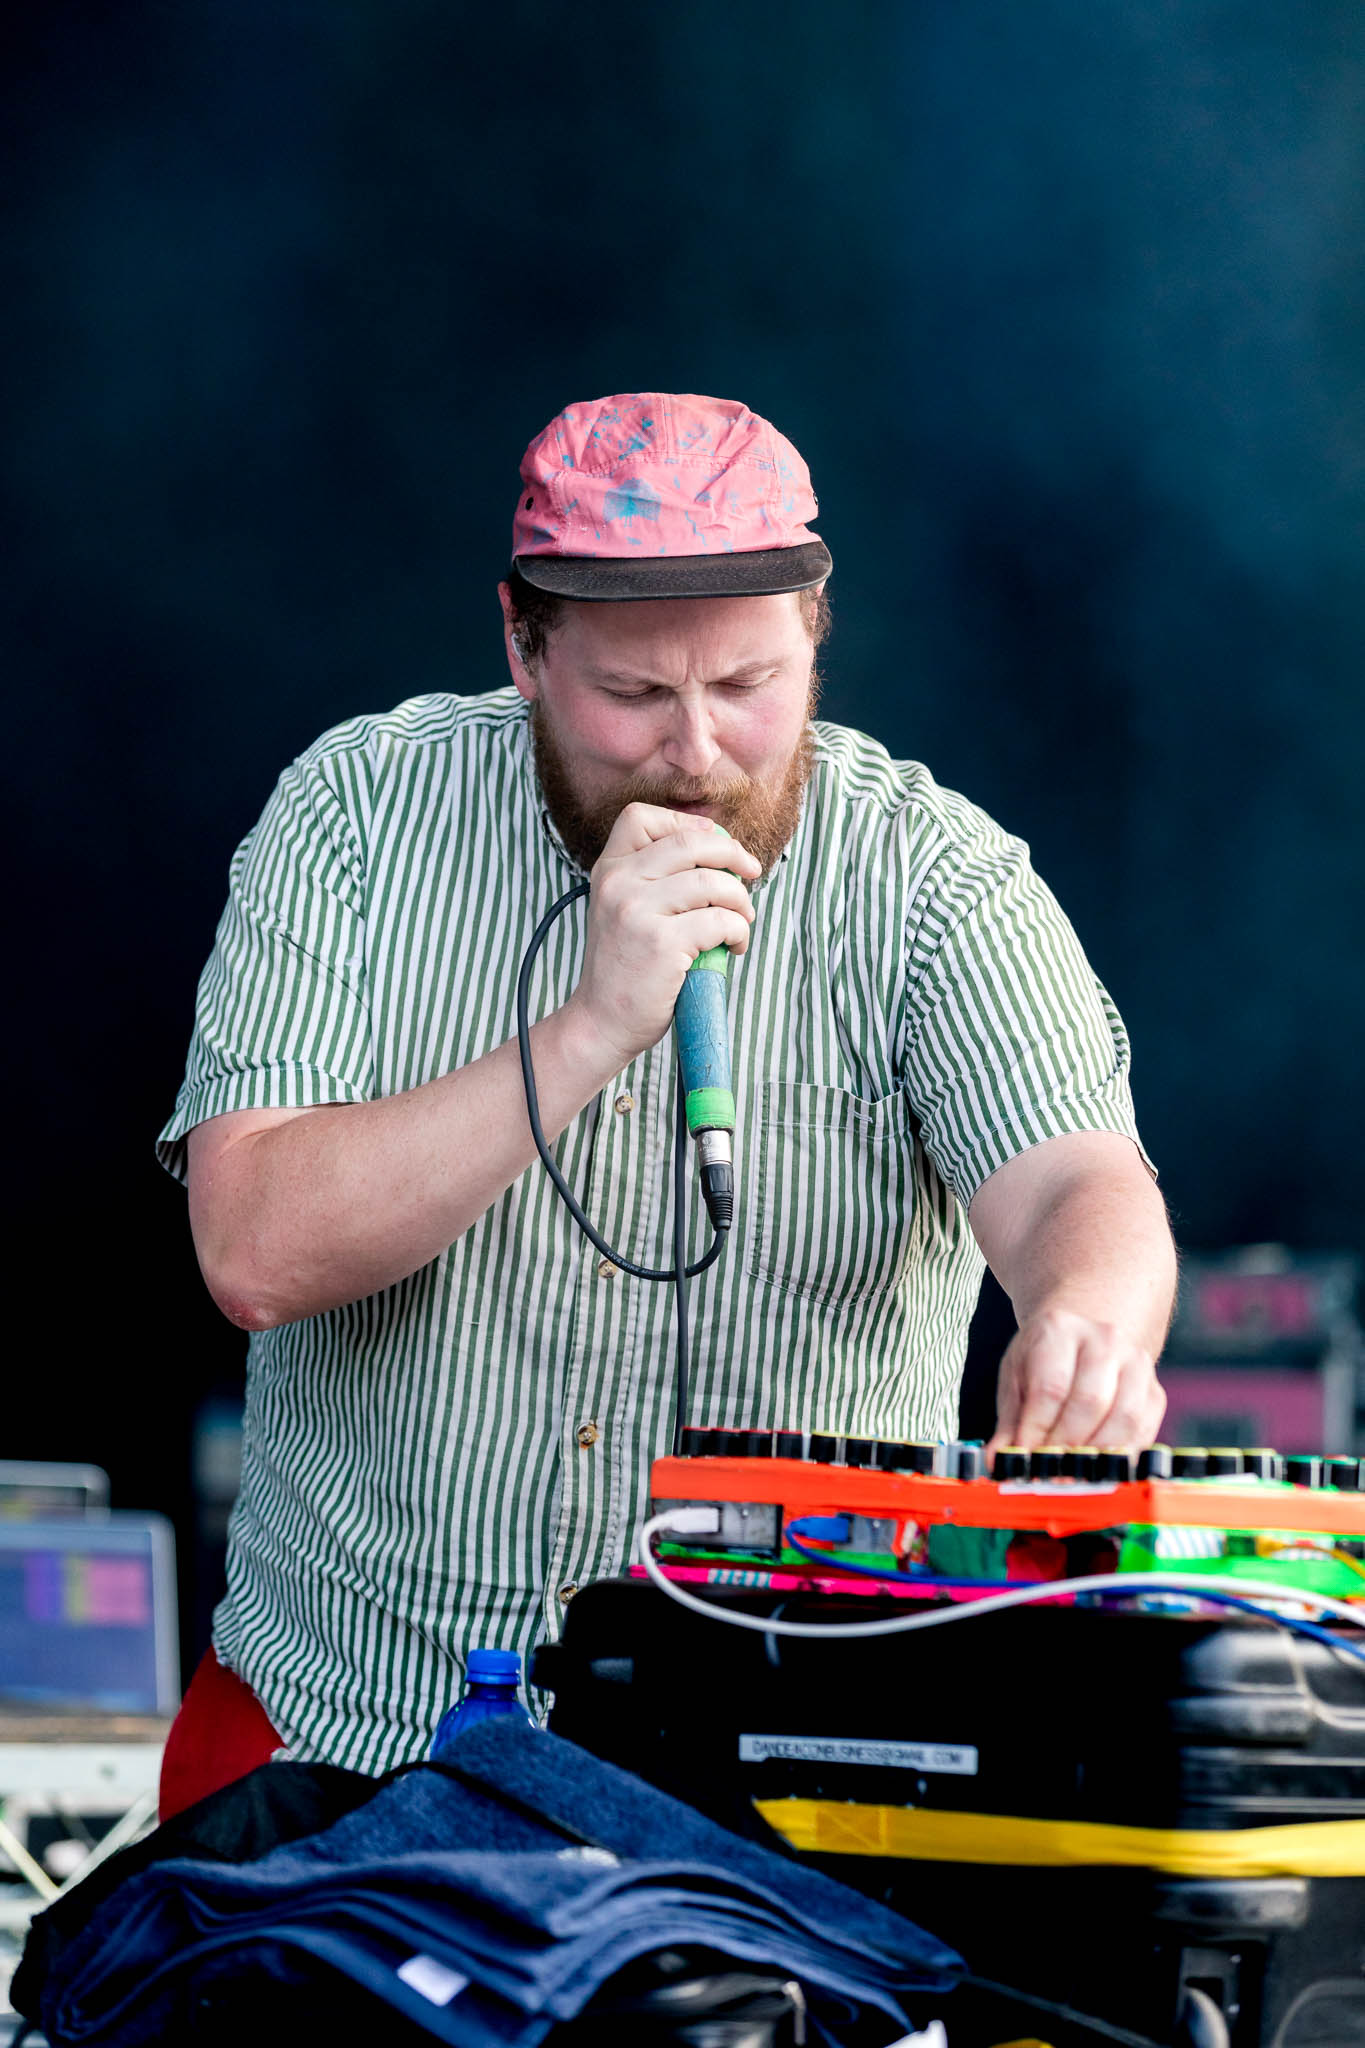 Dan Deacon. Photo: Lmsorenson.net